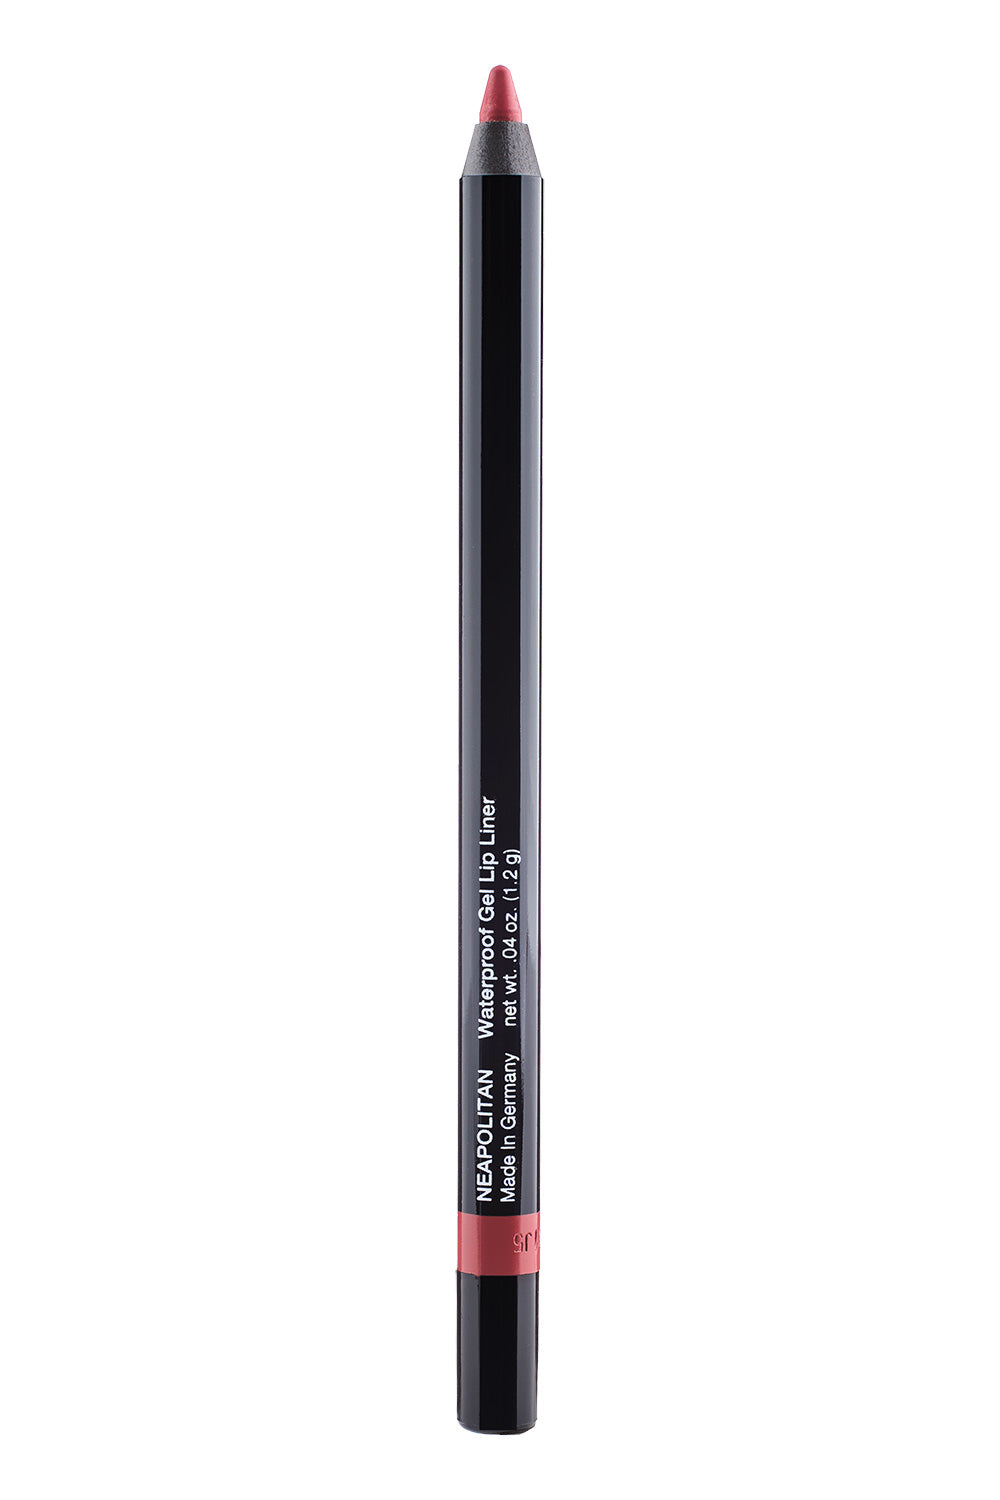 Neapolitan - Lip Liner Pencil